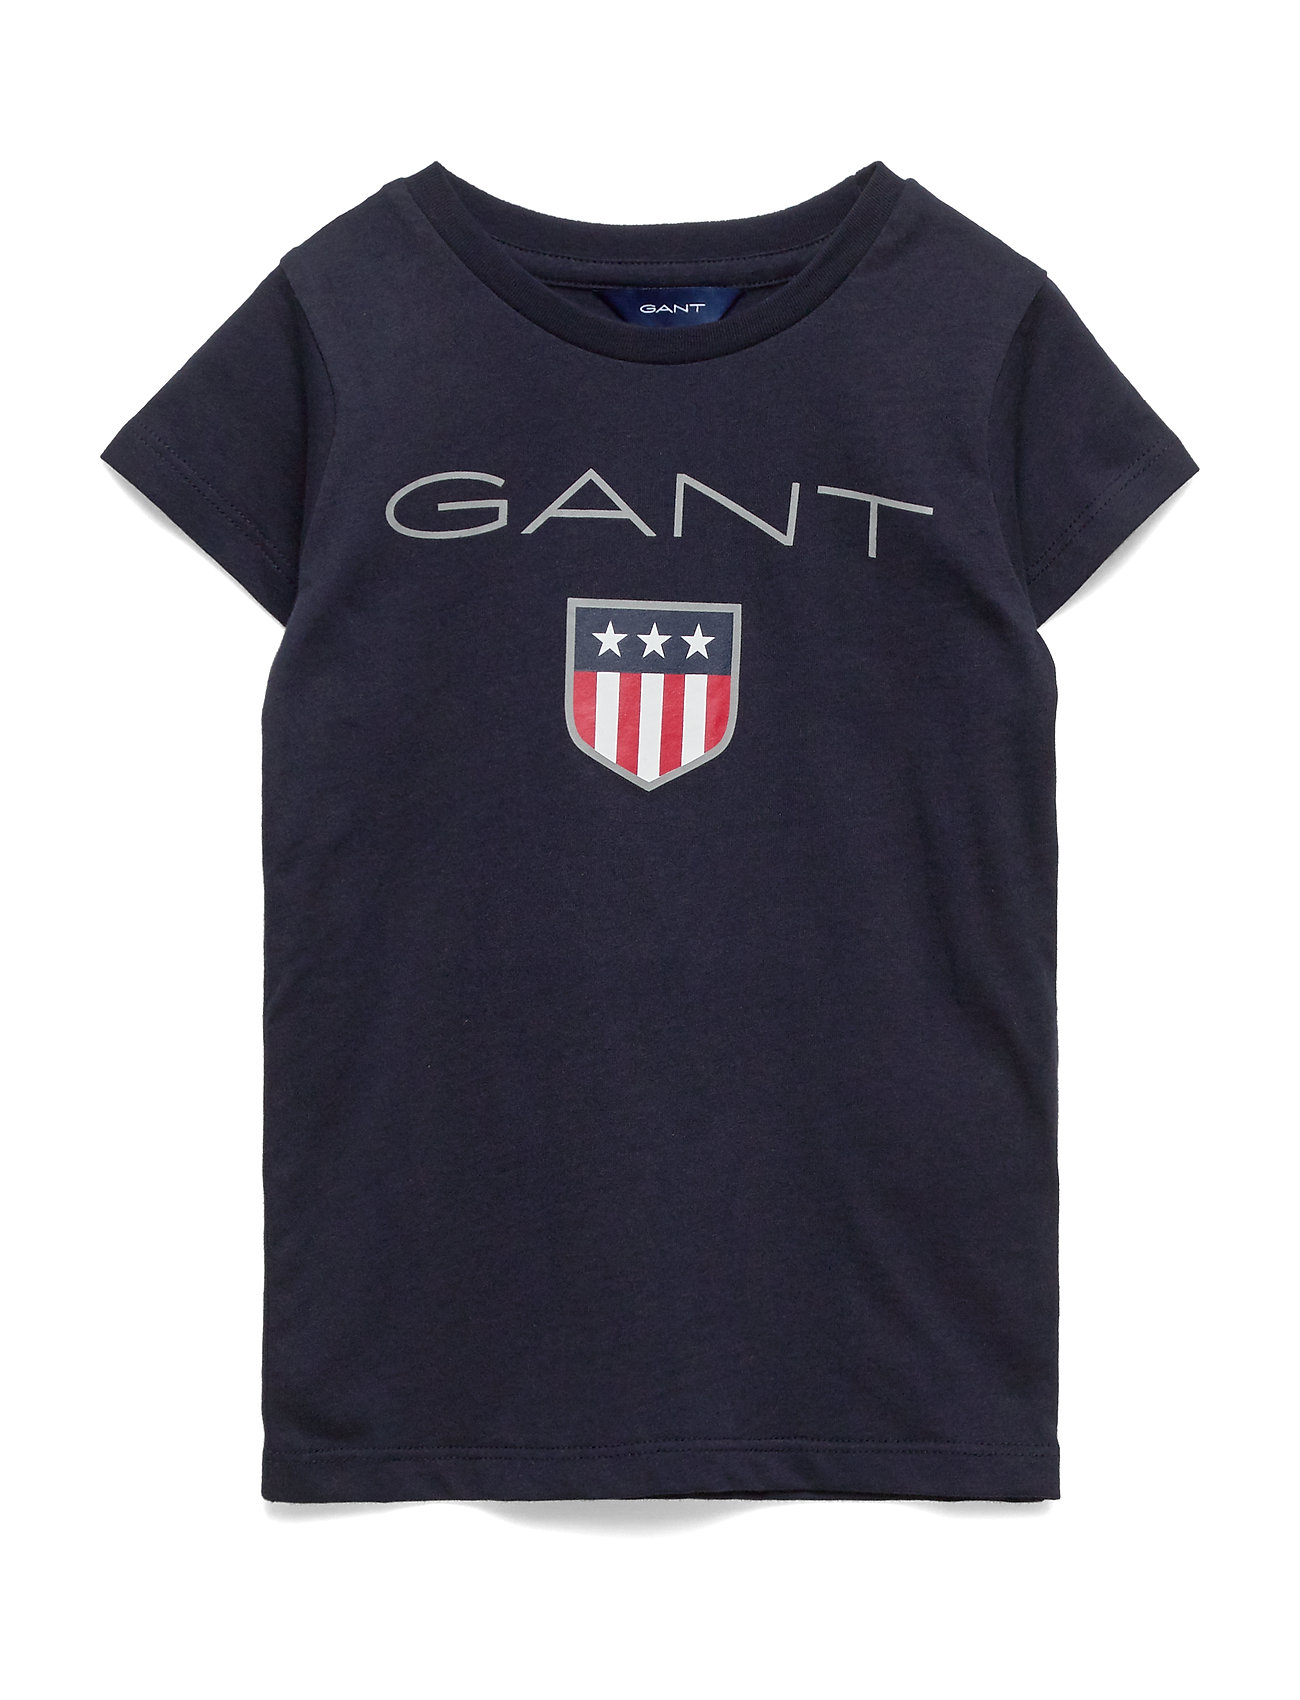 Gant GANT SHIELD LOGO SS T-SHIRT - EVENING BLUE